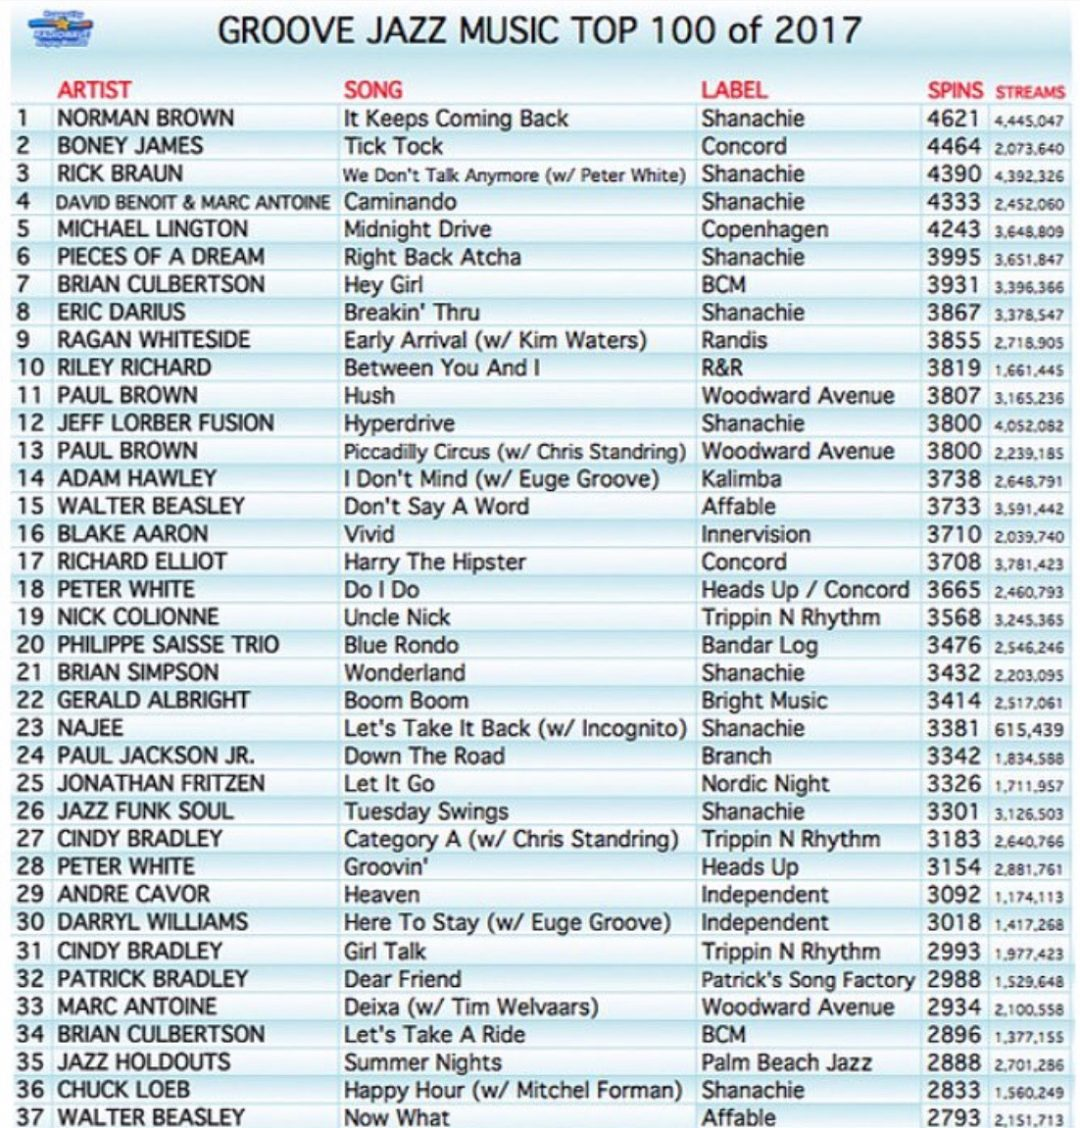 Humbled And Pleased To Let You Know That My Single Breakin Thru Was The 8 Most Played Song For 2017 On Groove Jazz Music Top 100 Year End Chart